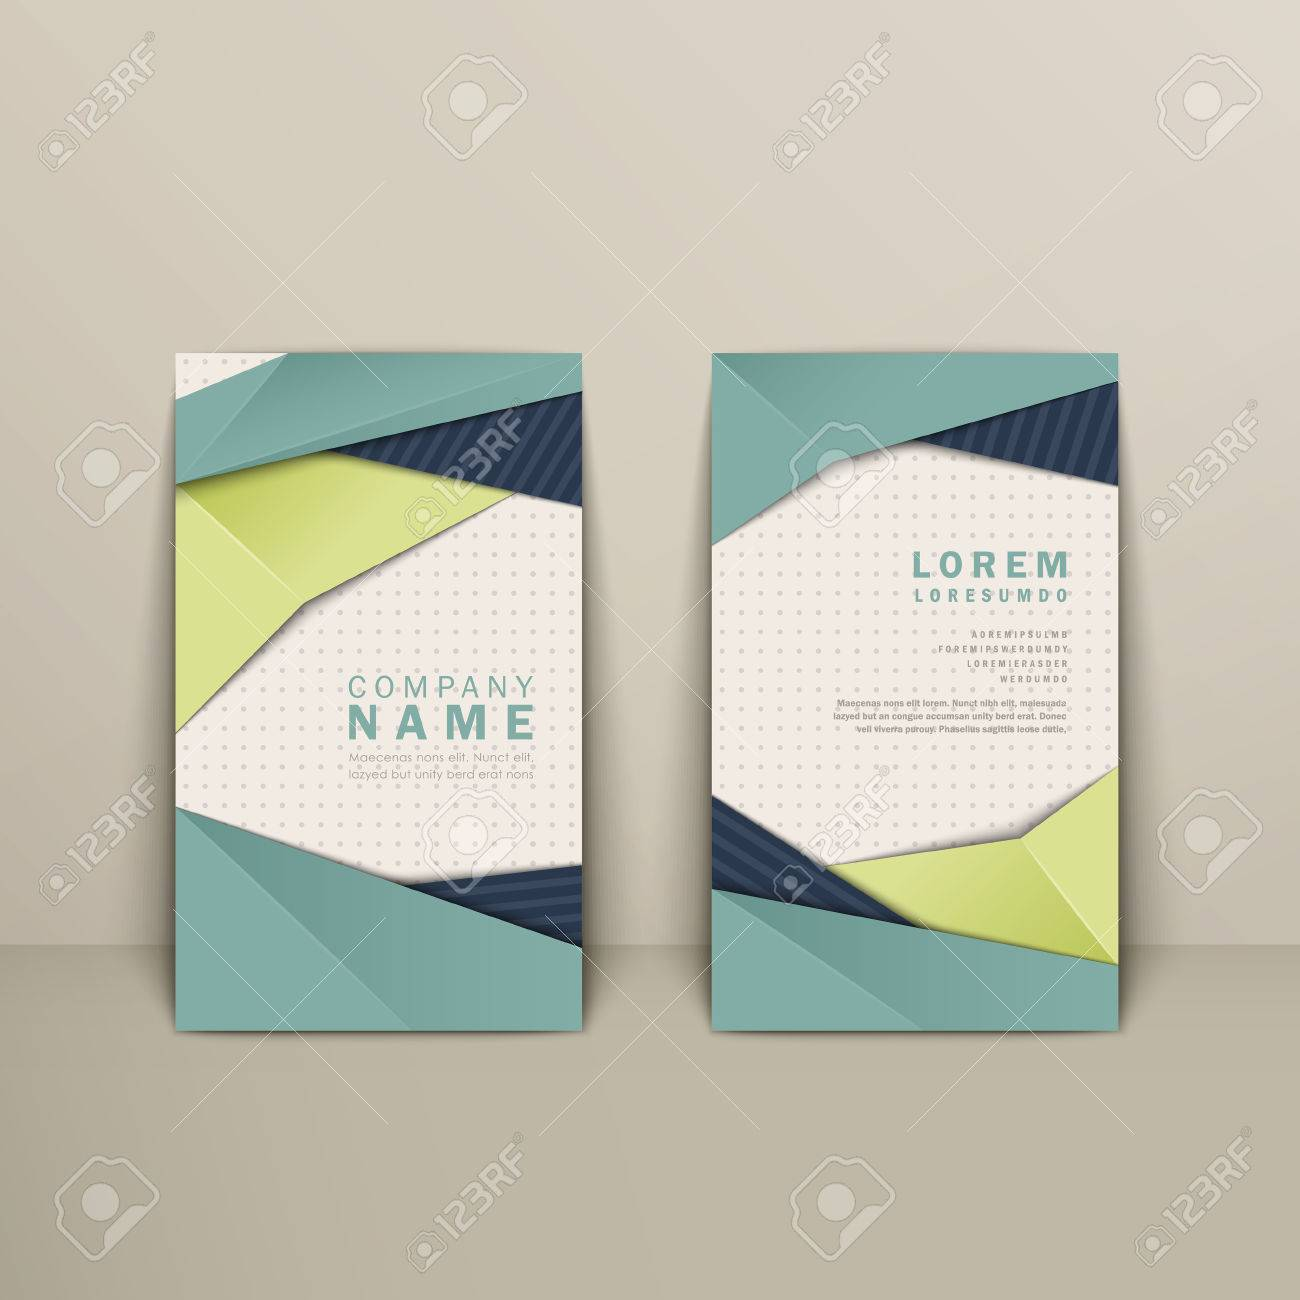 Trendy business card design with origami style elements in blue trendy business card design with origami style elements in blue and green stock vector 37964924 jeuxipadfo Gallery